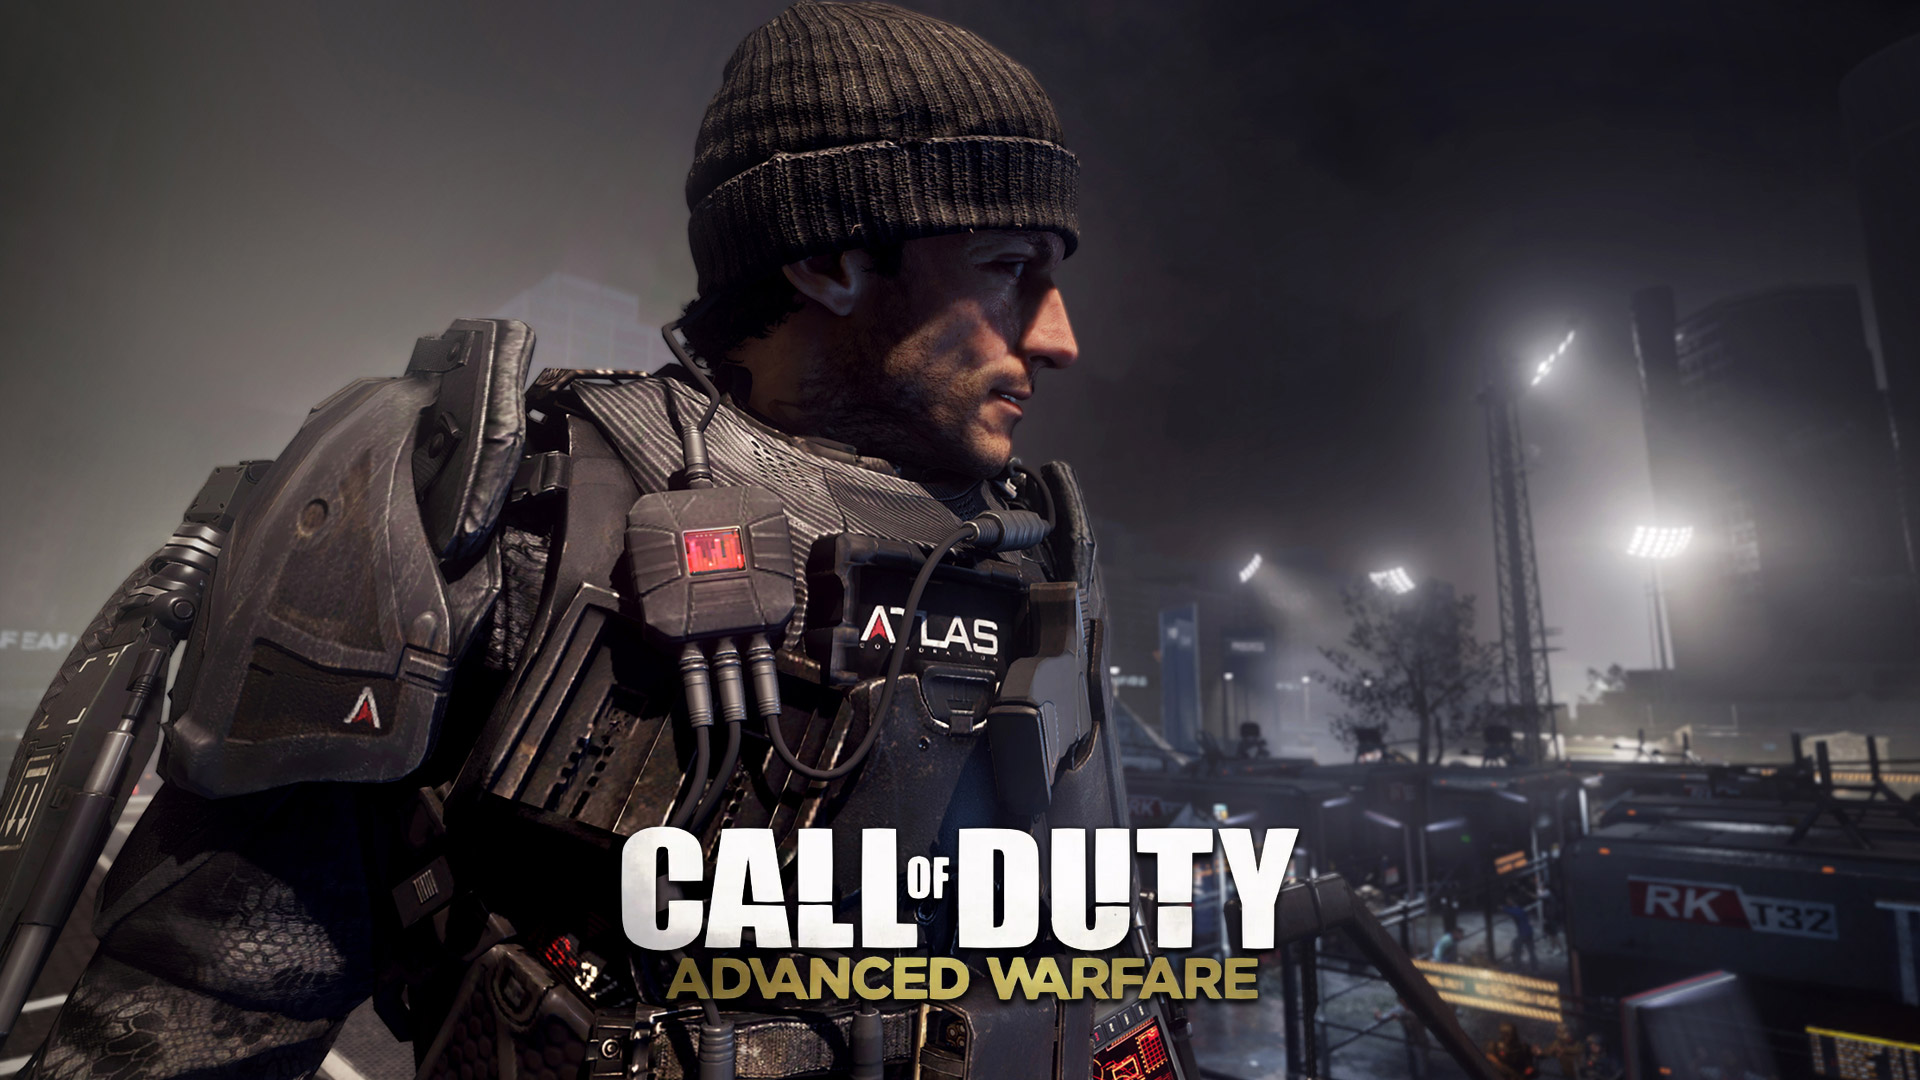 Call of Duty: Advanced Warfare Wallpaper in 1920x1080